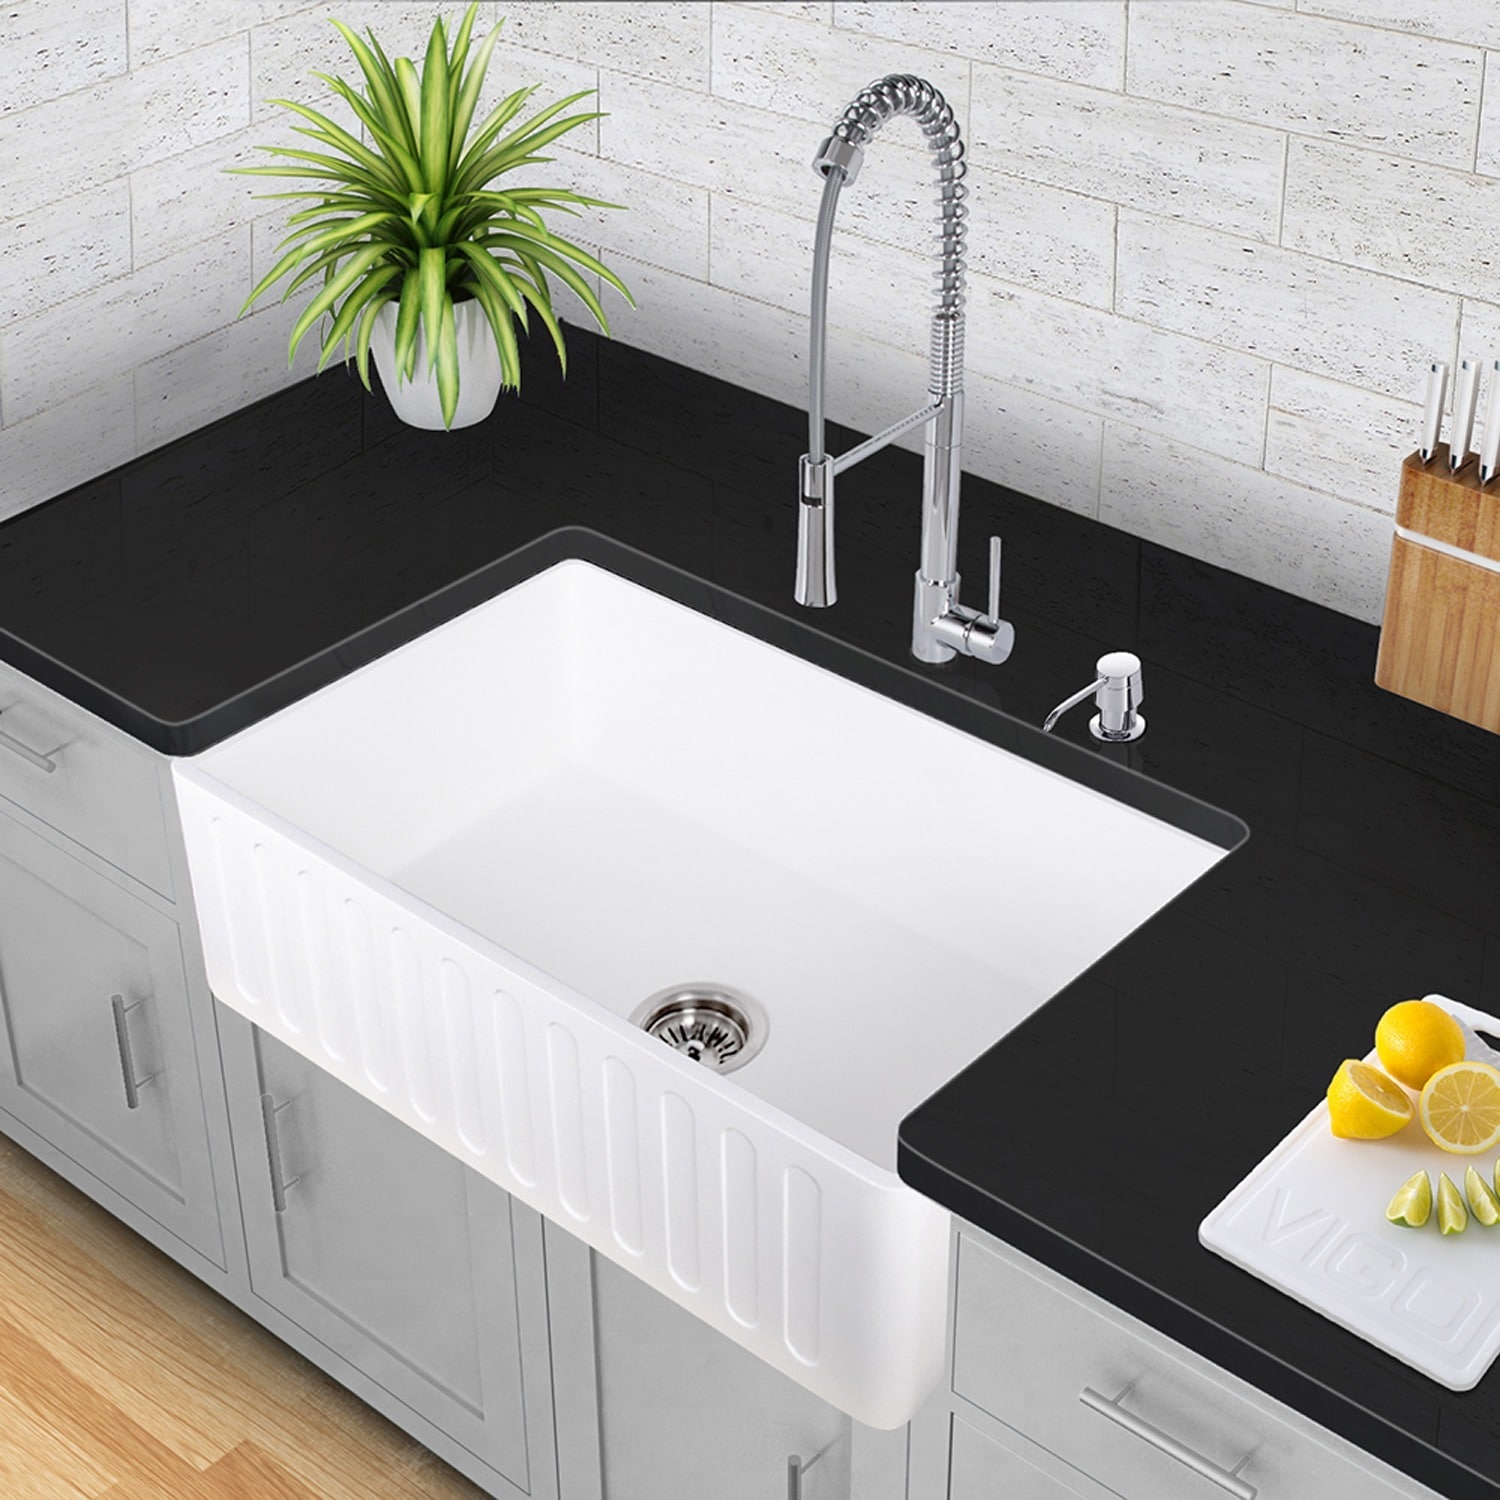 best awards a fireclay wins in sink shaws new no sinks product kbis rohl gold waterside award overflow of kitchen